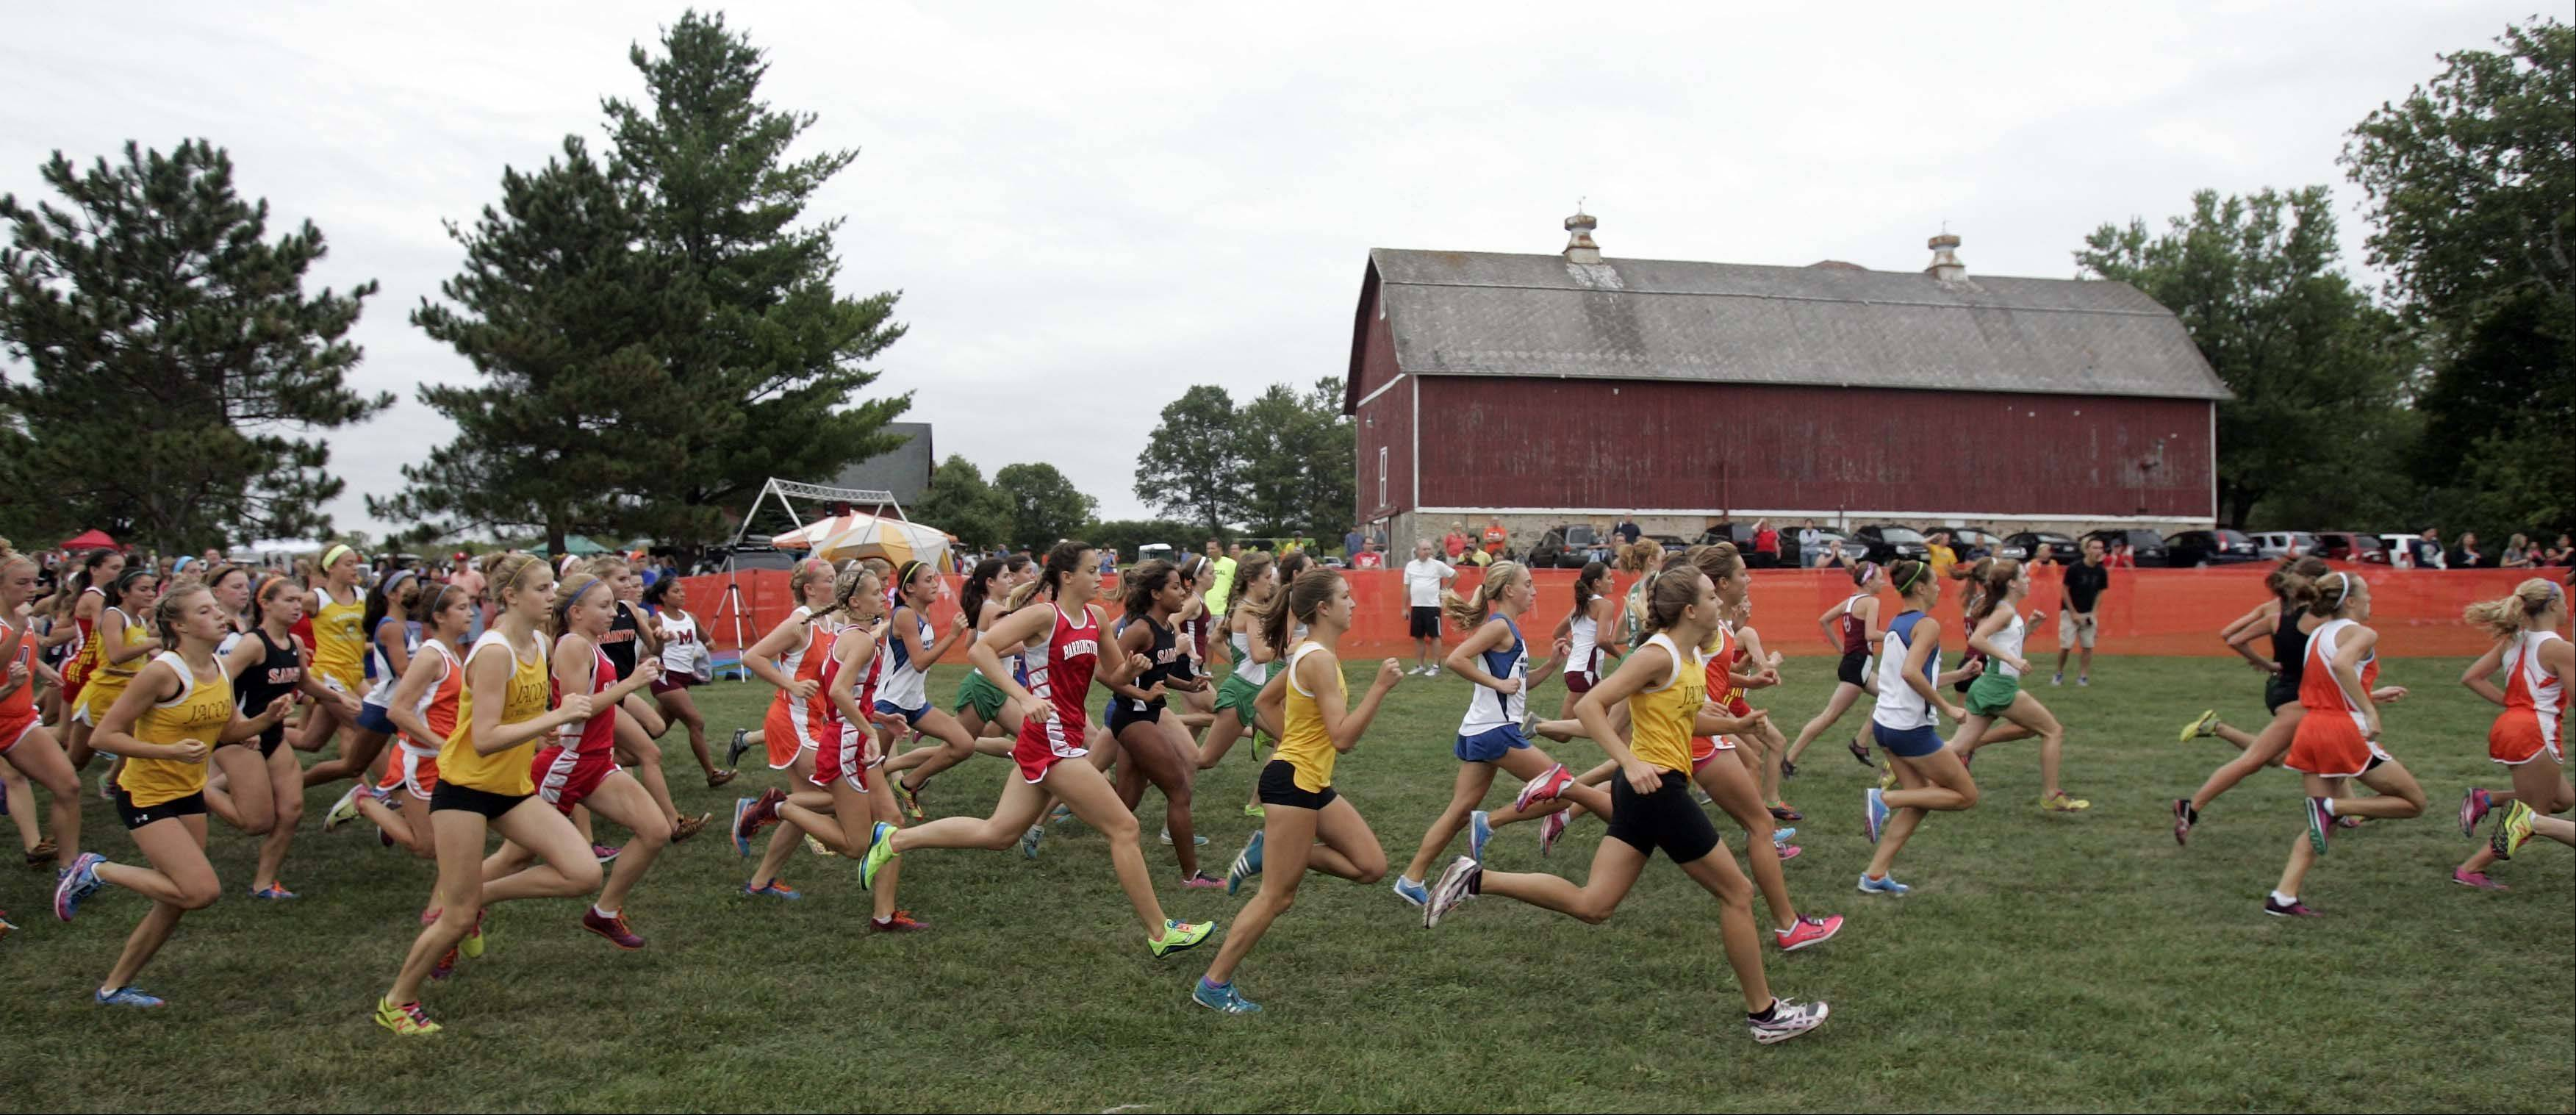 The start of the girls varsity race at the St. Charles East cross country meet at LeRoy Oakes in St. Charles Saturday September 1, 2012.